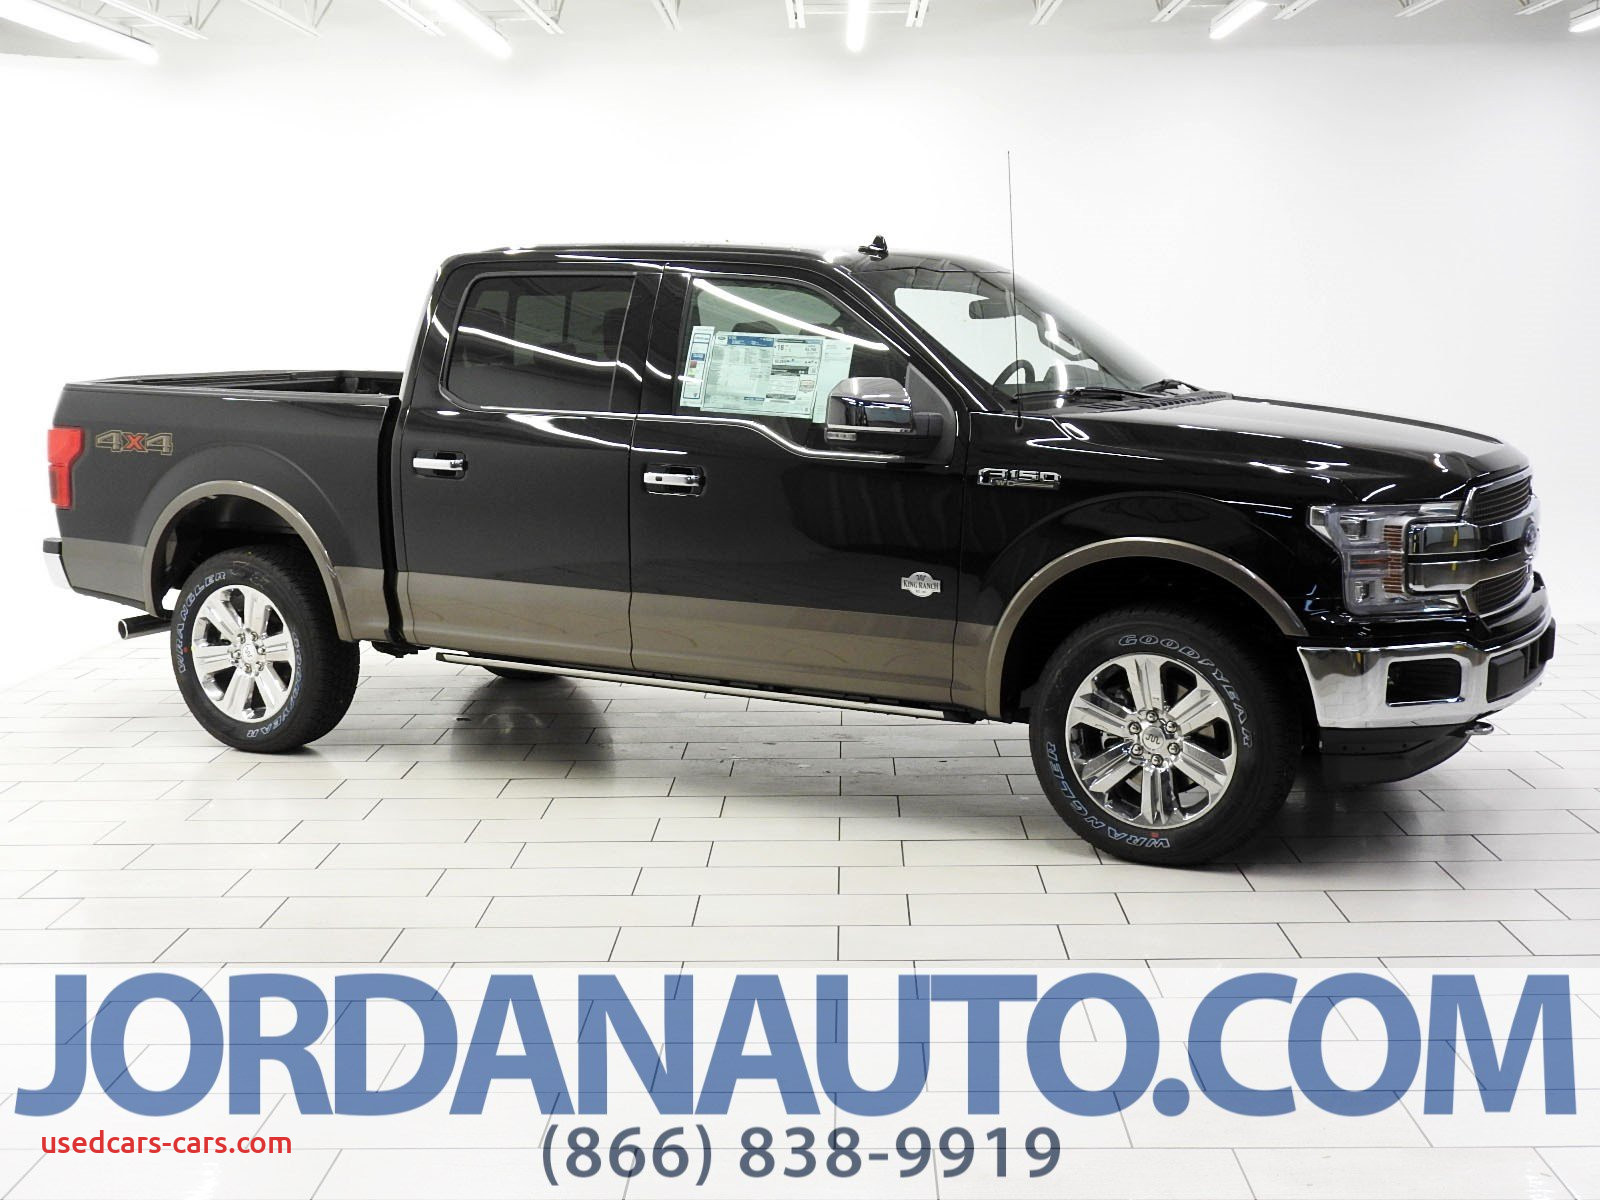 Ford 2020 King Ranch Awesome New 2020 ford F 150 King Ranch with 4wd